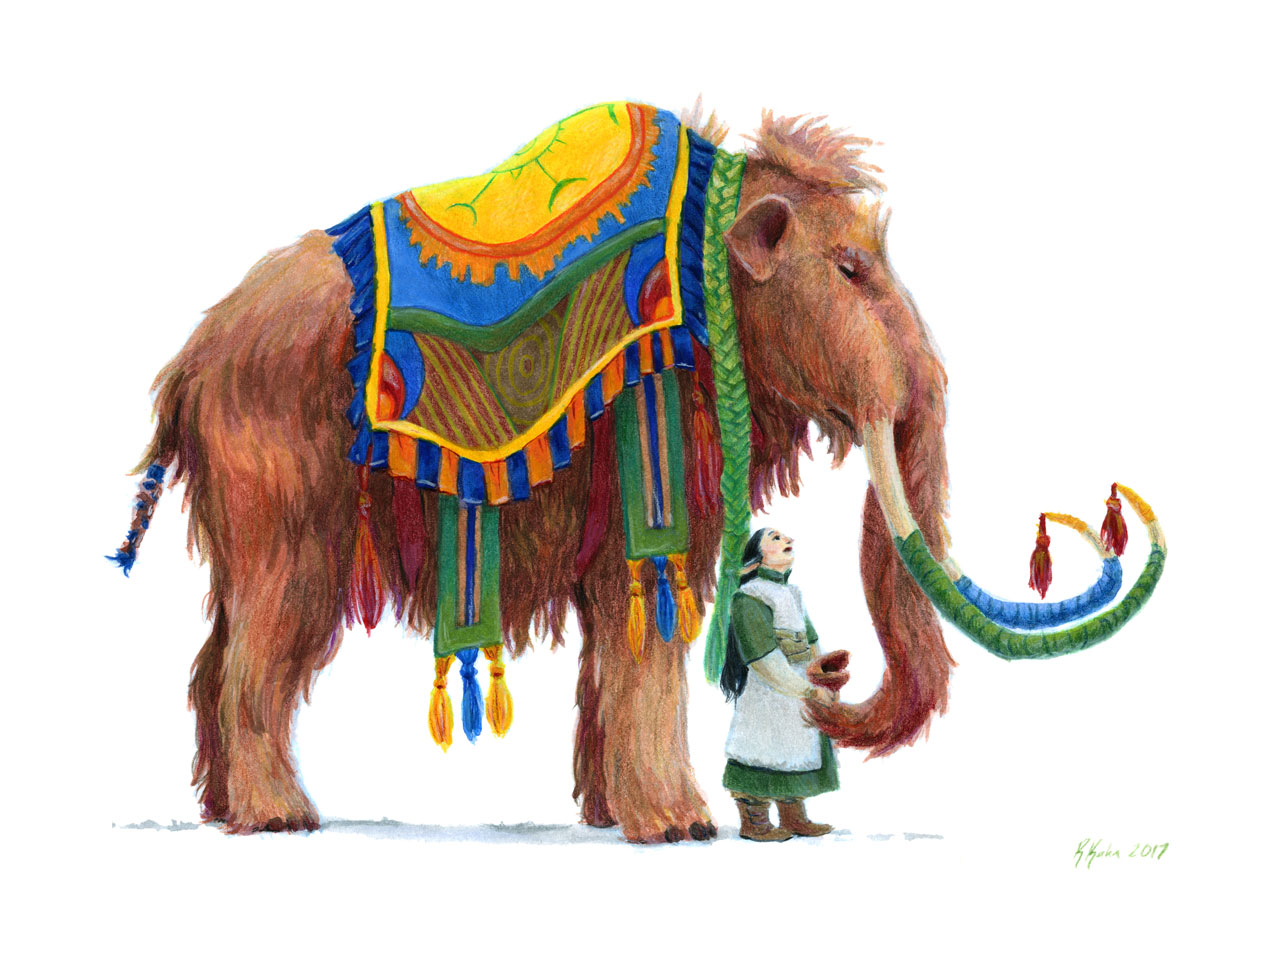 The Well-Dressed Woolly Mammoth